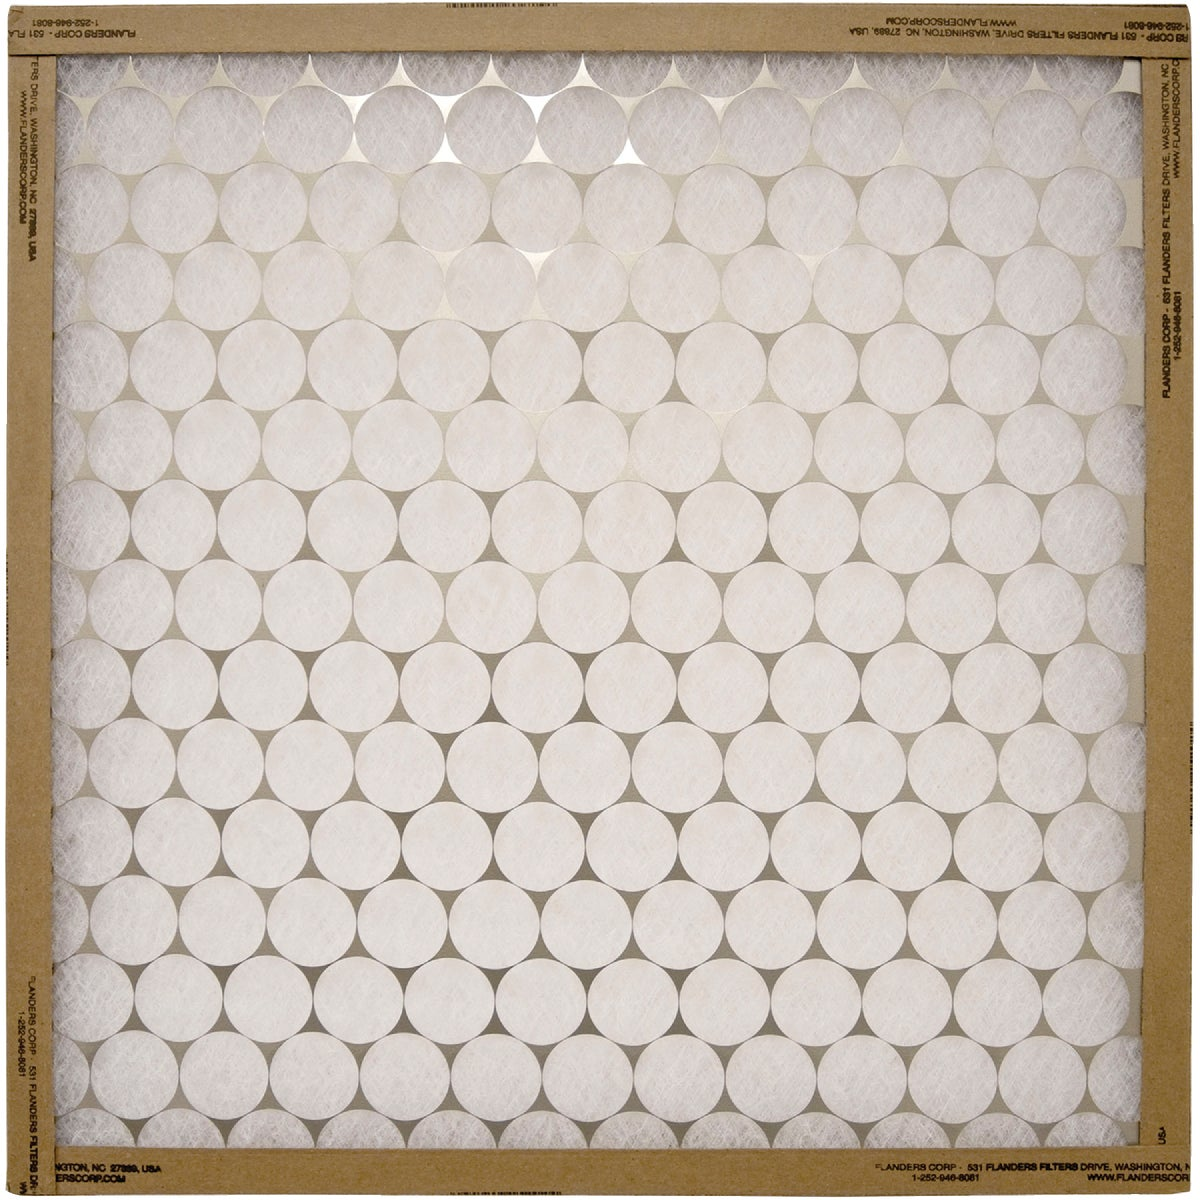 14X20 FURNACE FILTER - 10255.011420 by Flanders Corp